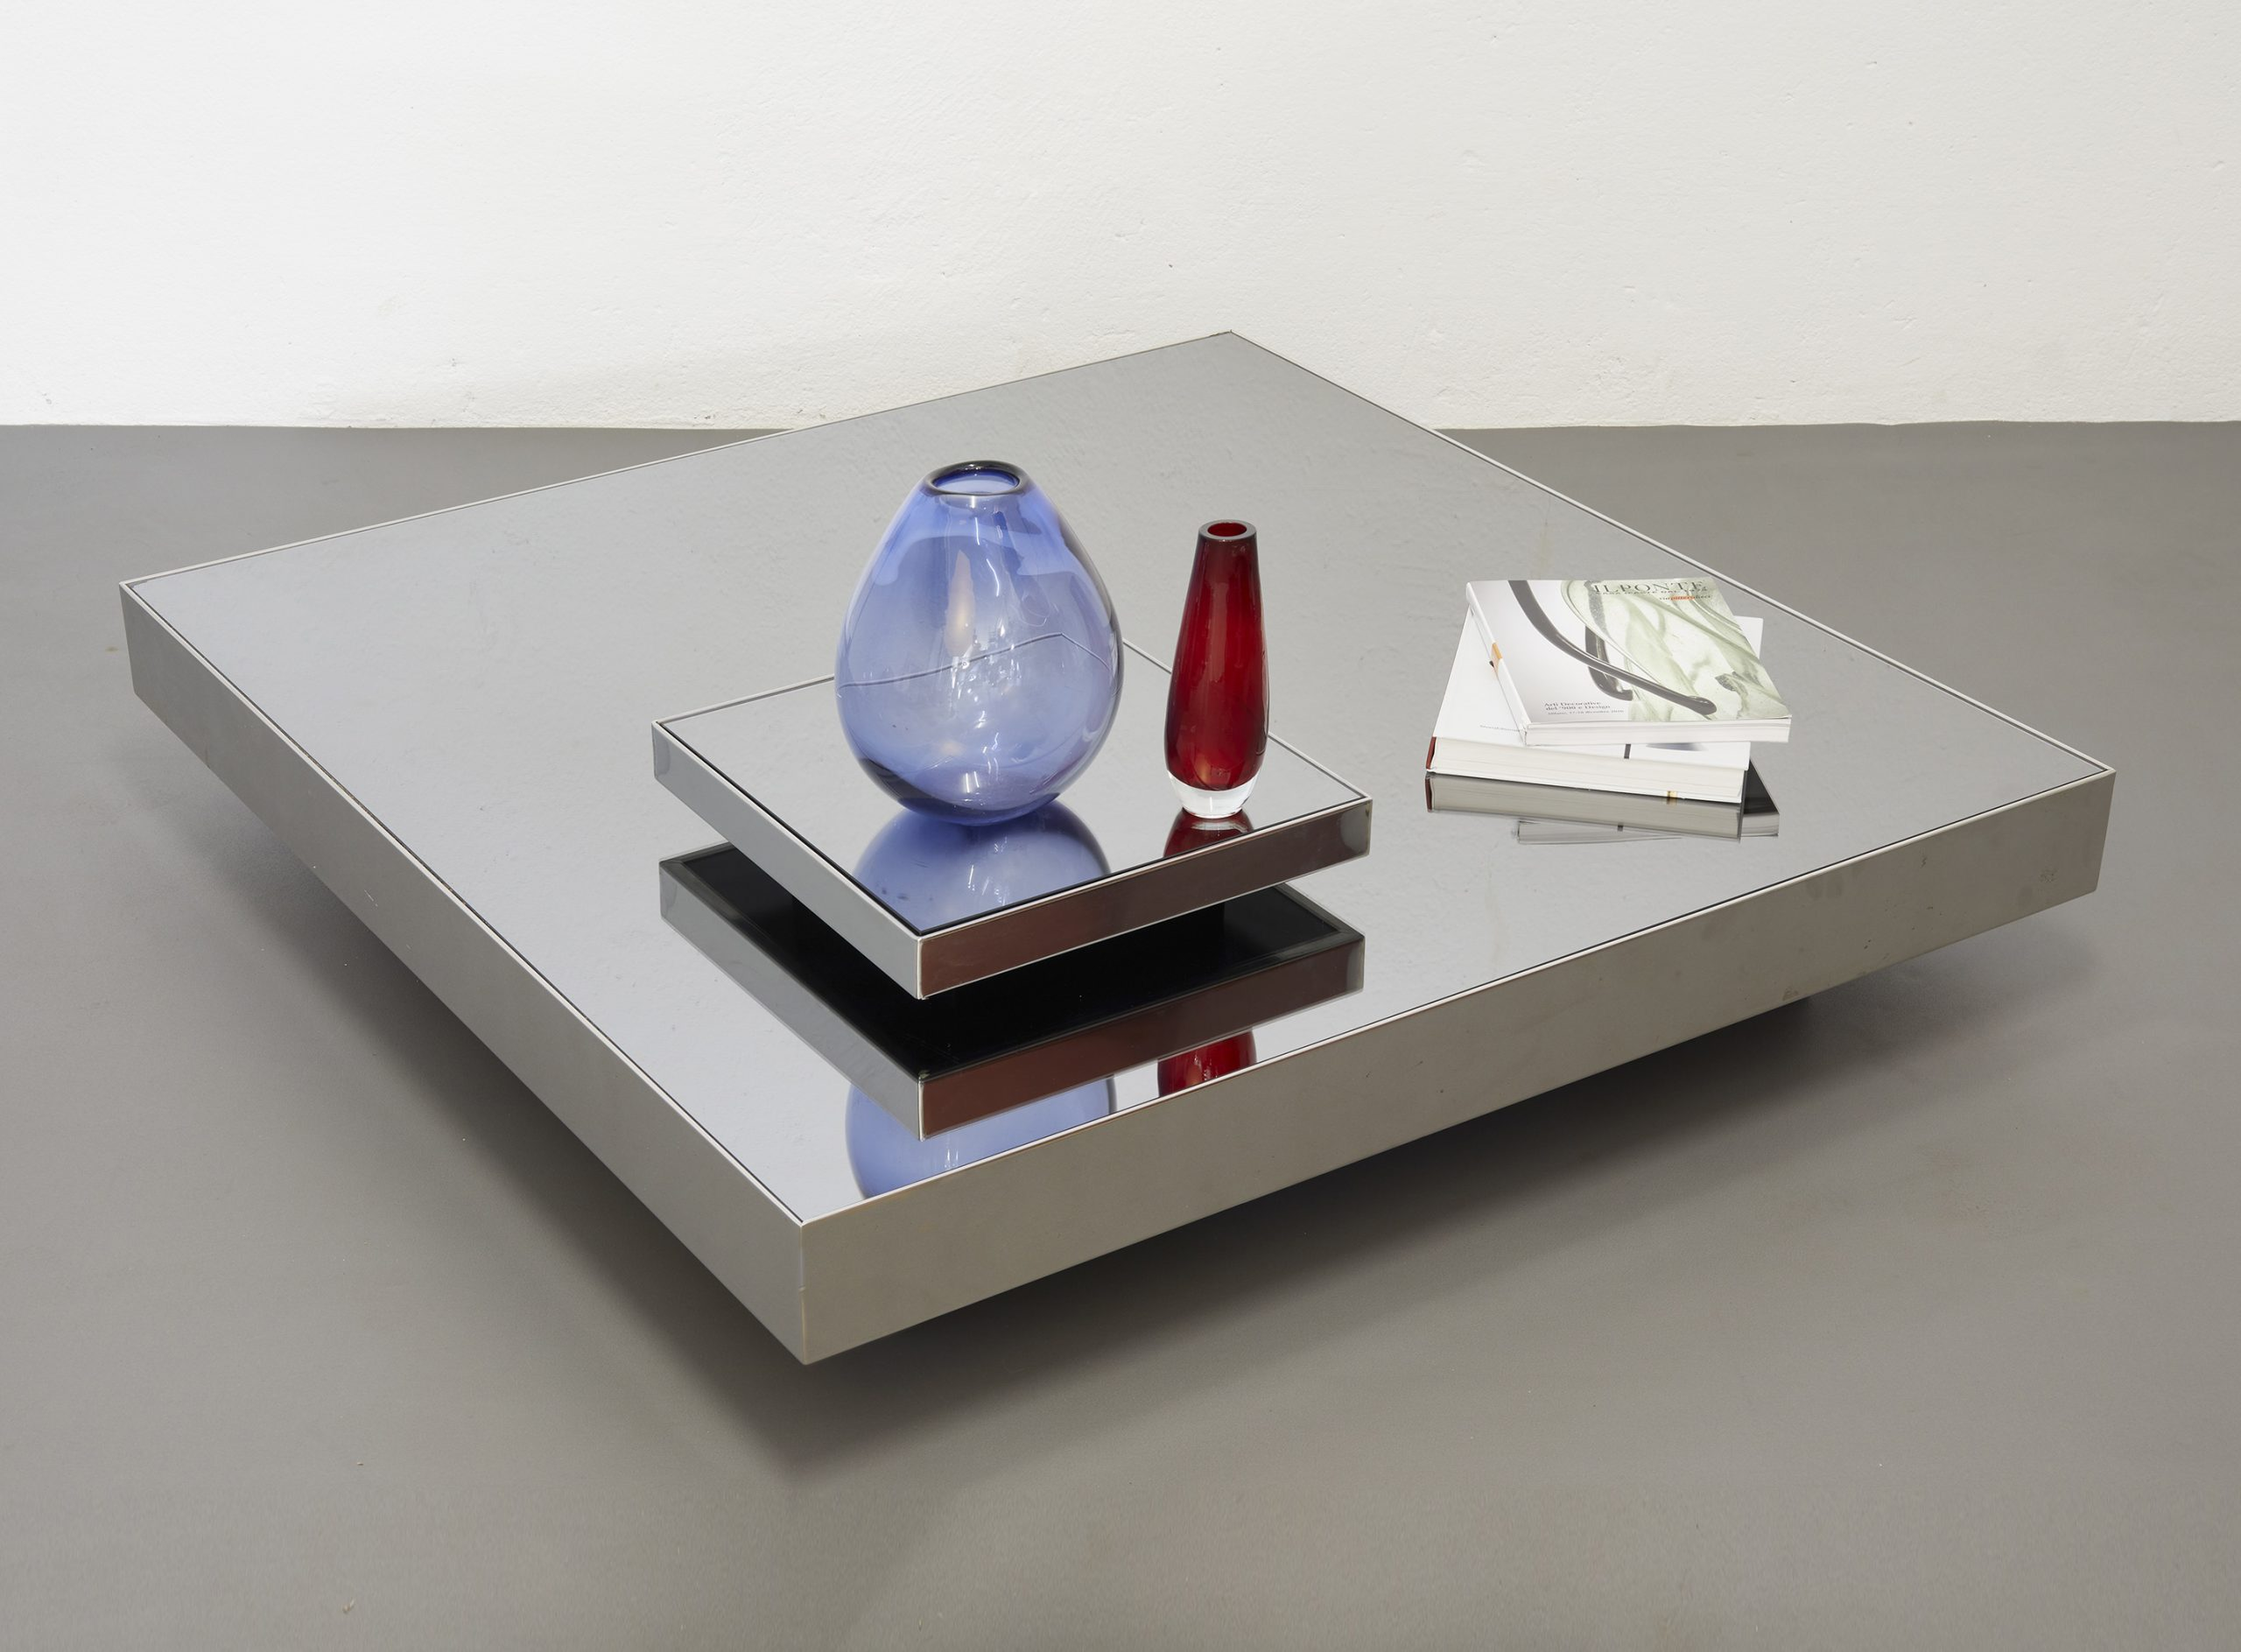 square-coffee-table-by-giovanni-ausenda-ny-form-1970-image-02